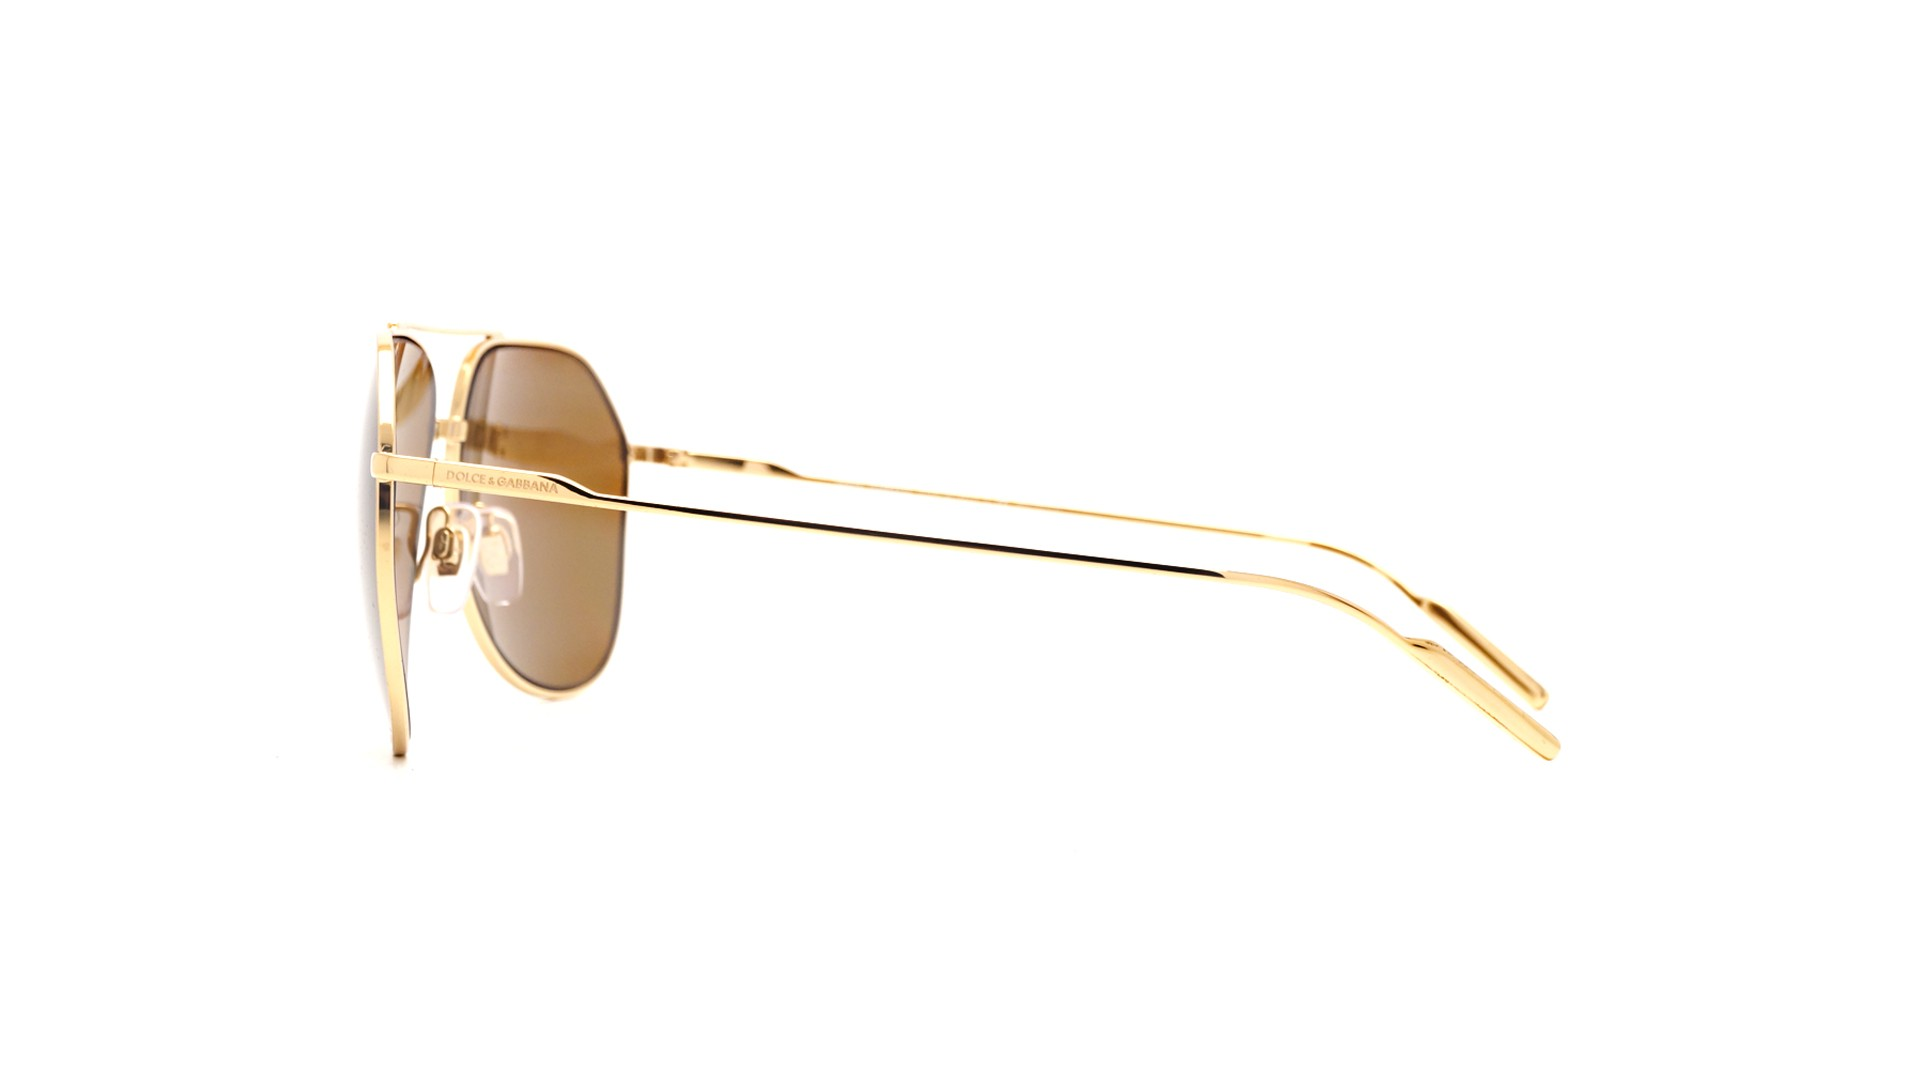 Sunglasses Dolce   Gabbana DG2166 02 83 61-14 Gold Large Polarized f2a225eb9a17